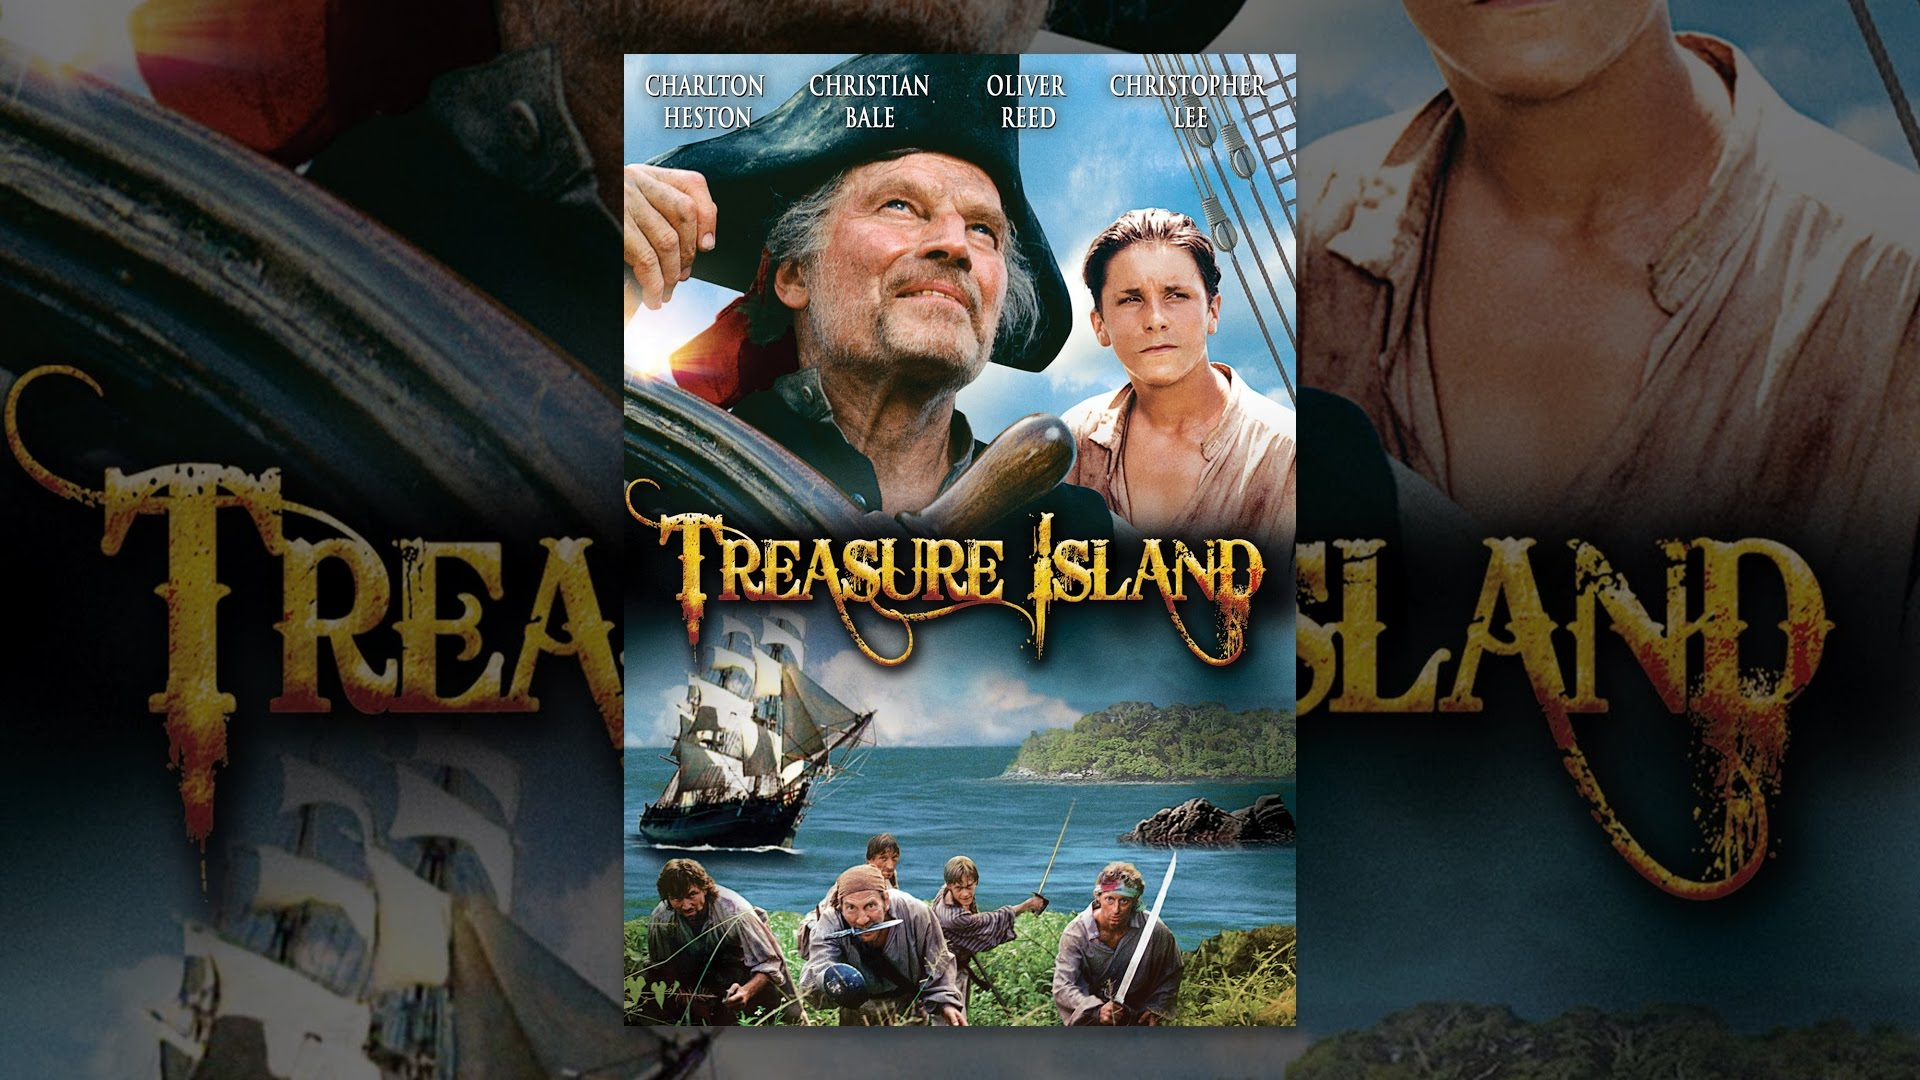 Youtube Treasure Island Charlton Heston